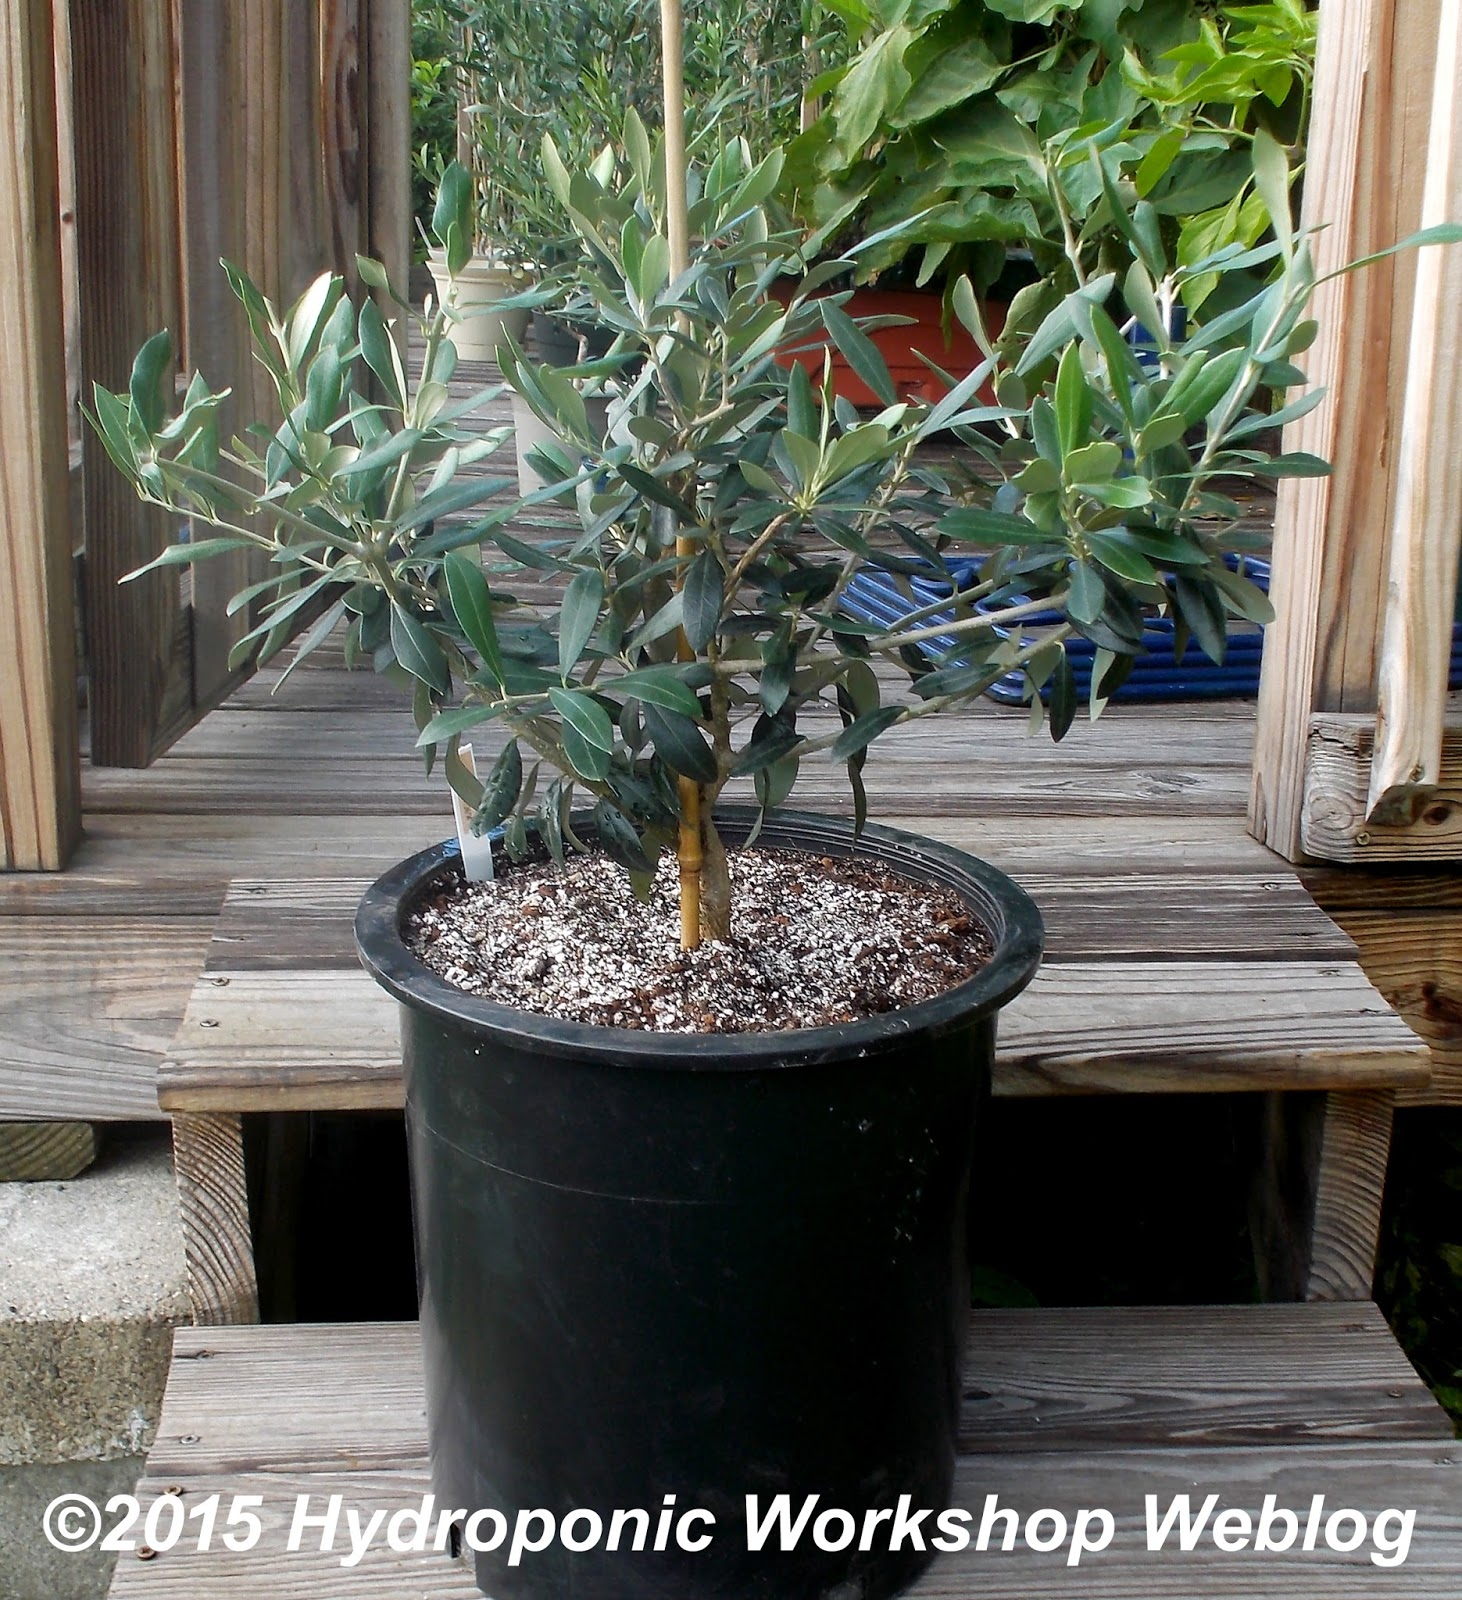 Hydroponic workshop journal february 4 2016 olive for What to plant under olive trees